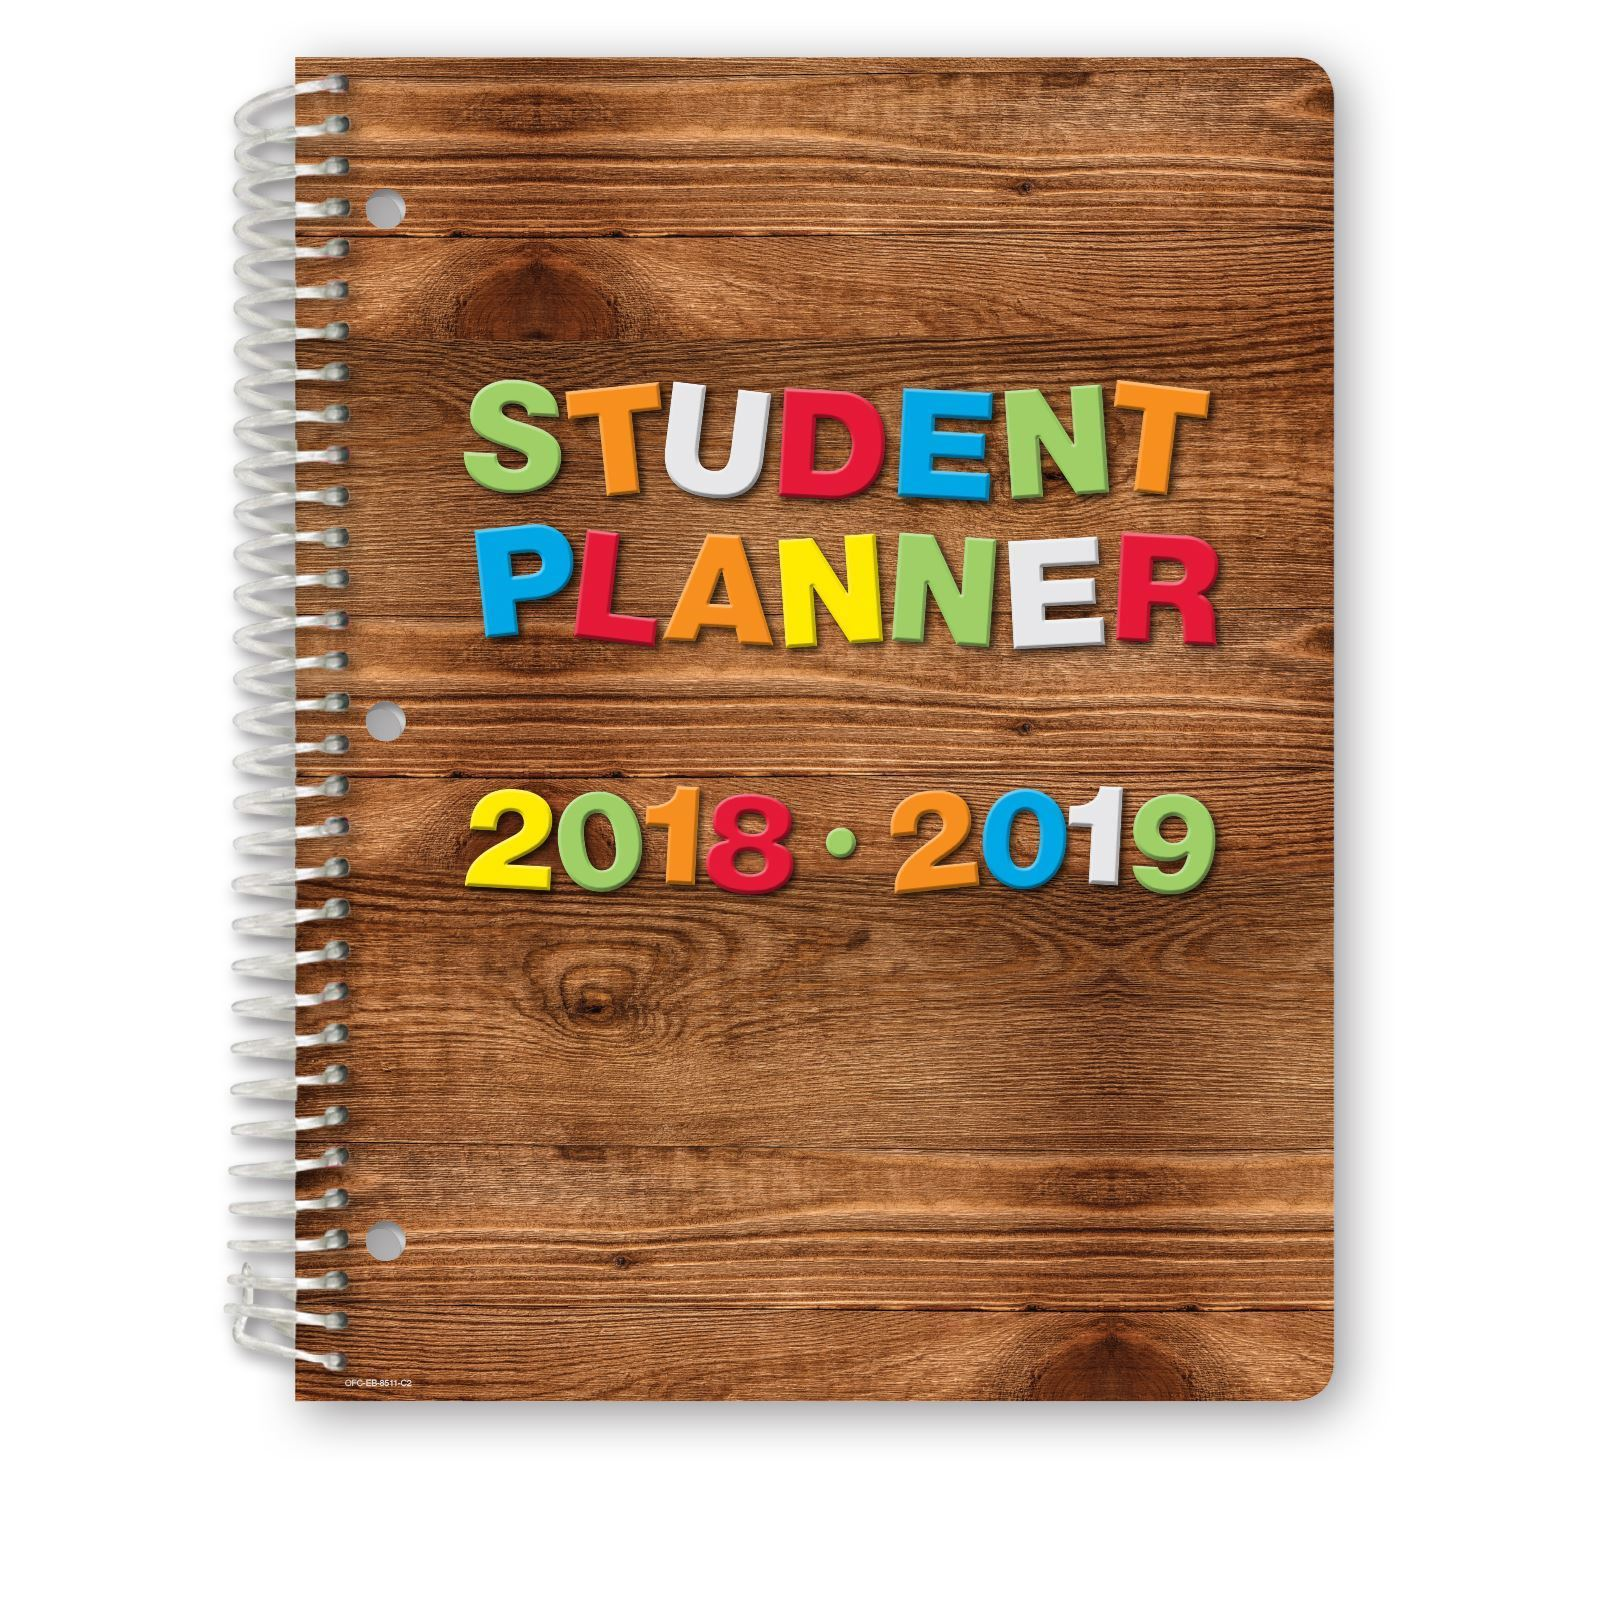 Picture of Dated Elementary Student Planner for Academic Year 2018-2019